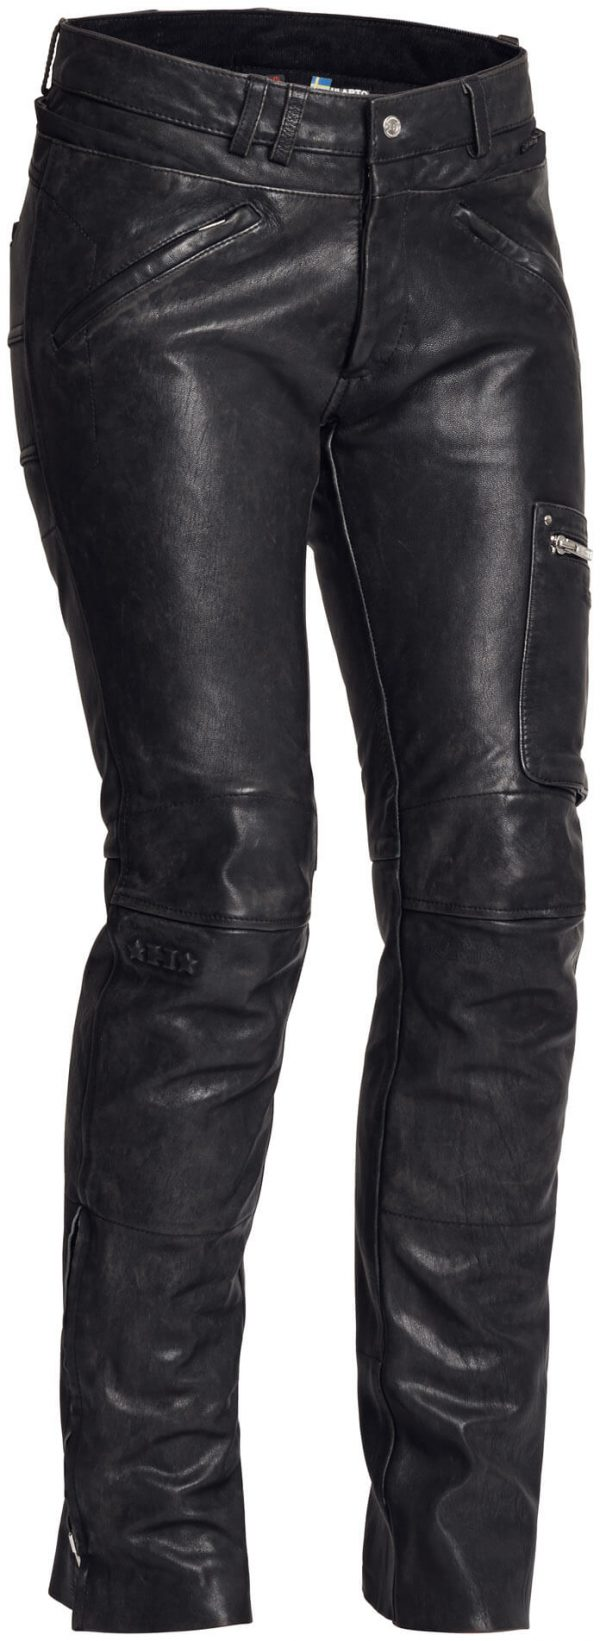 Halvarssons Leather pants Rider Lady Black